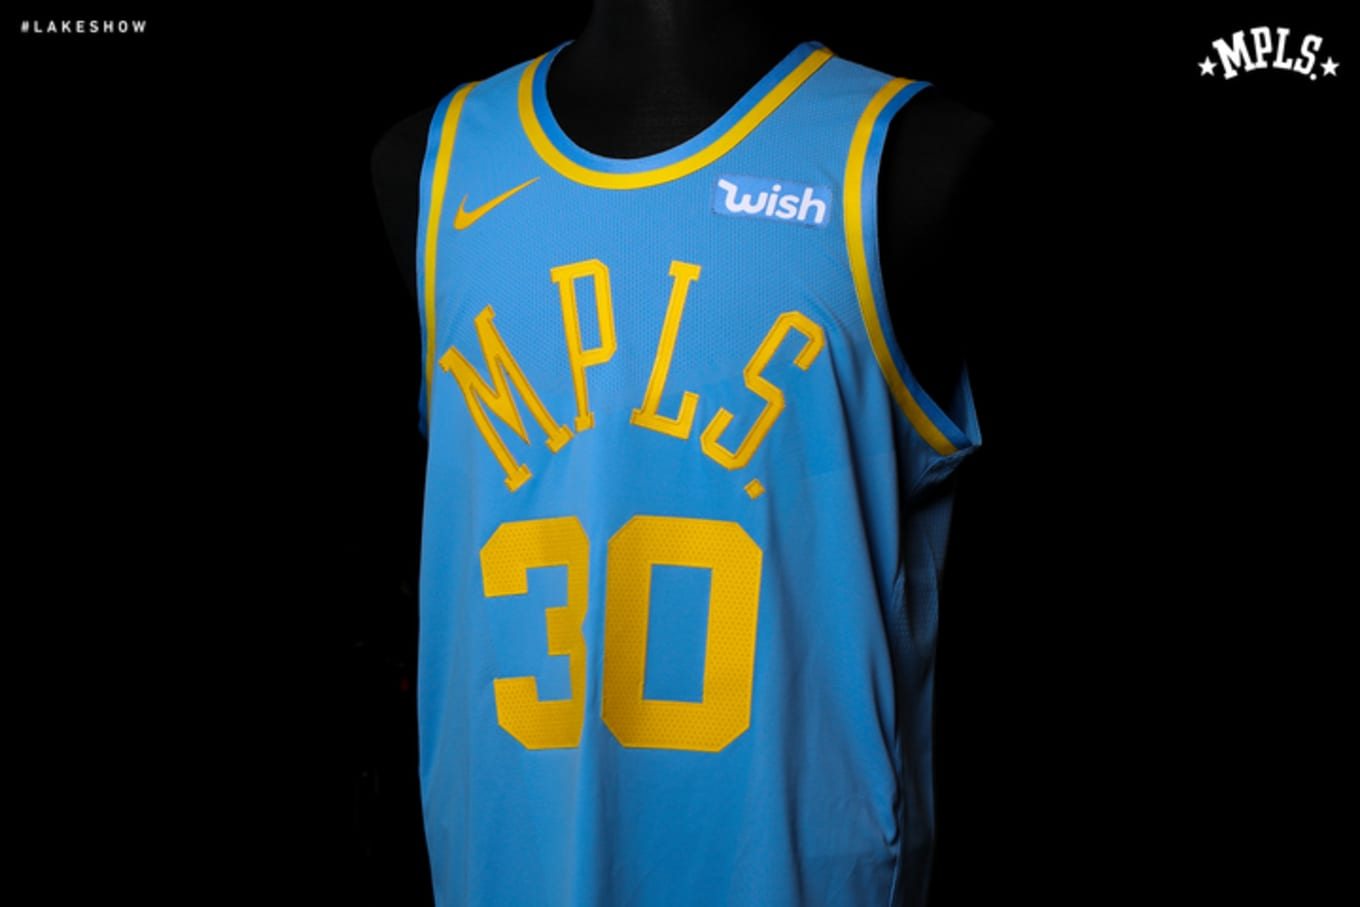 buy online 06319 4873c Los Angeles Lakers Reveal 'MPLS' Nike Classic Jersey | Sole ...